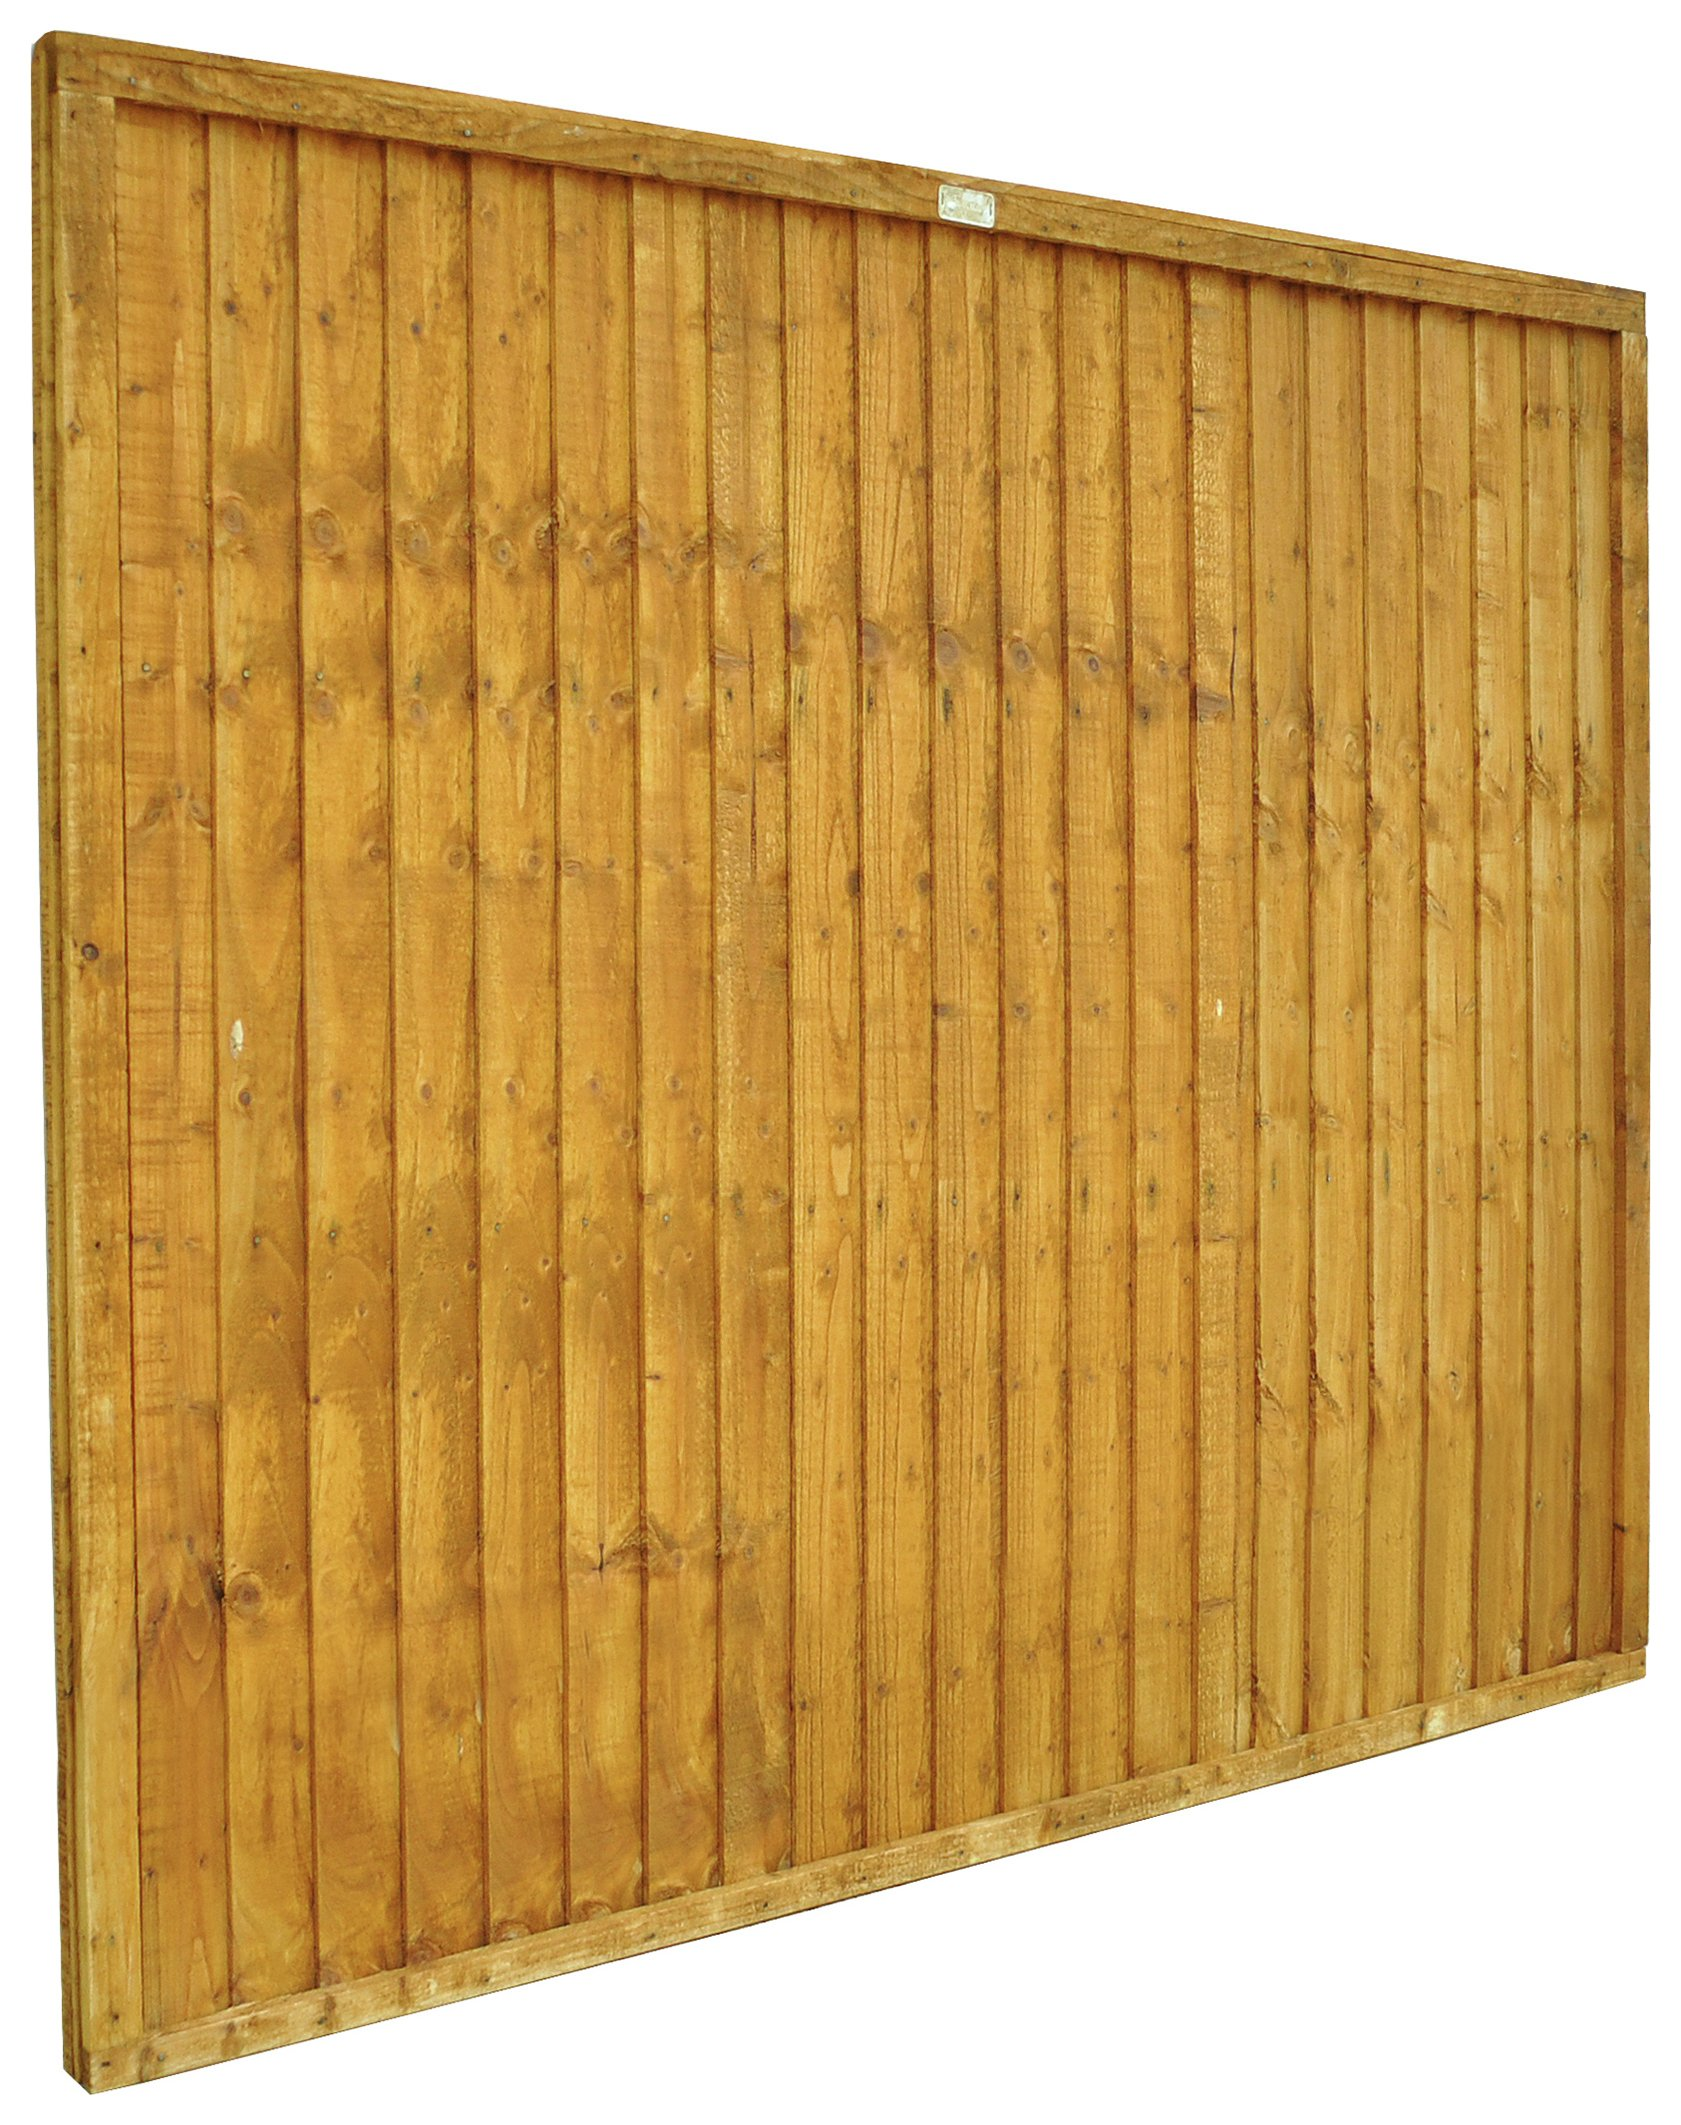 Forest 1.5m Larchlap Closeboard Fence Panel - Pack of 10. lowest price